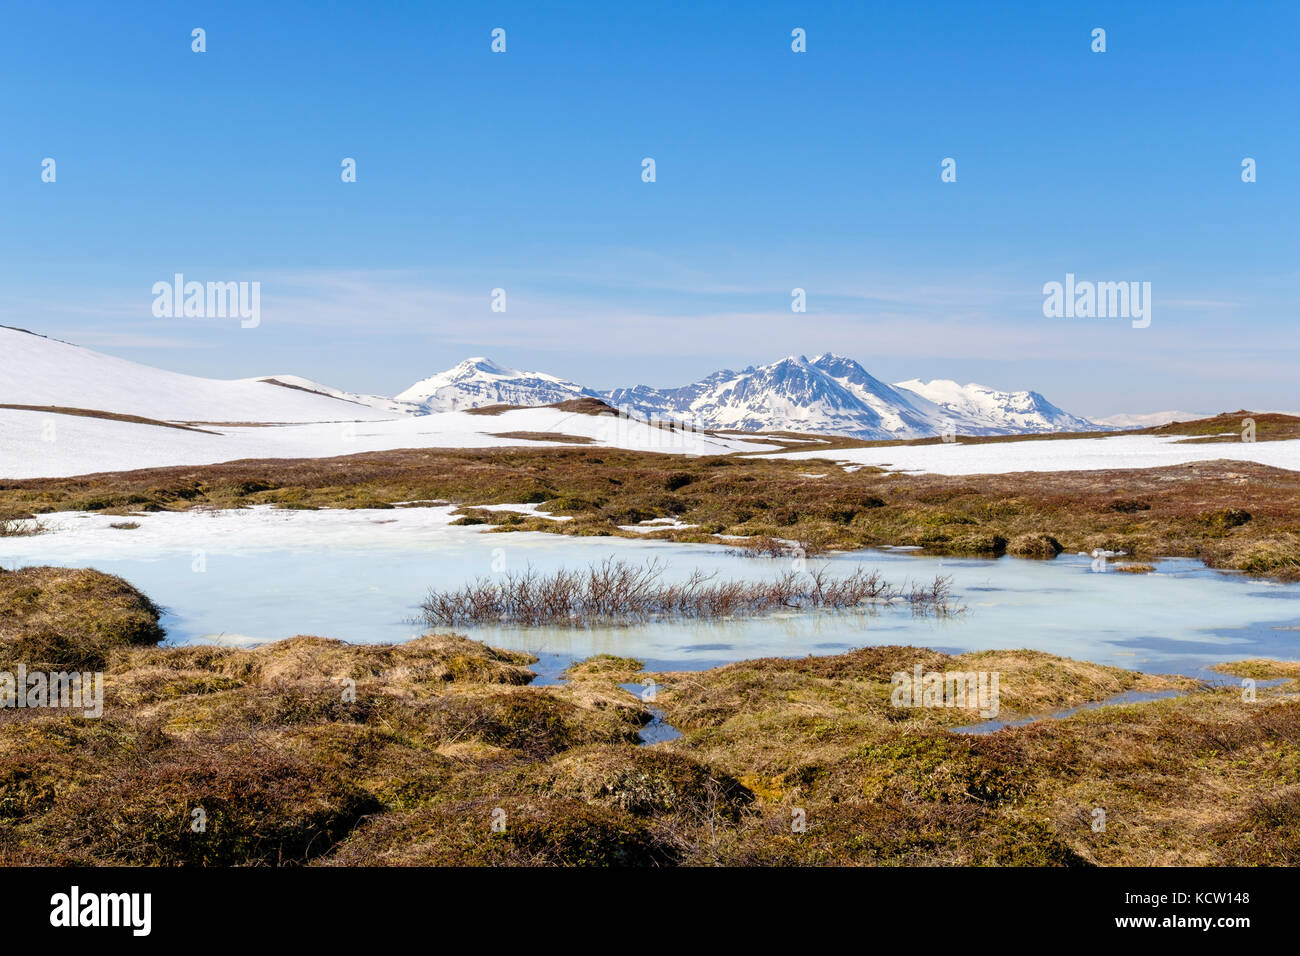 Frozen pond in high Arctic Tundra landscape on Mount Storsteinen in summer. Tromso, Troms, Norway, Scandinavia - Stock Image